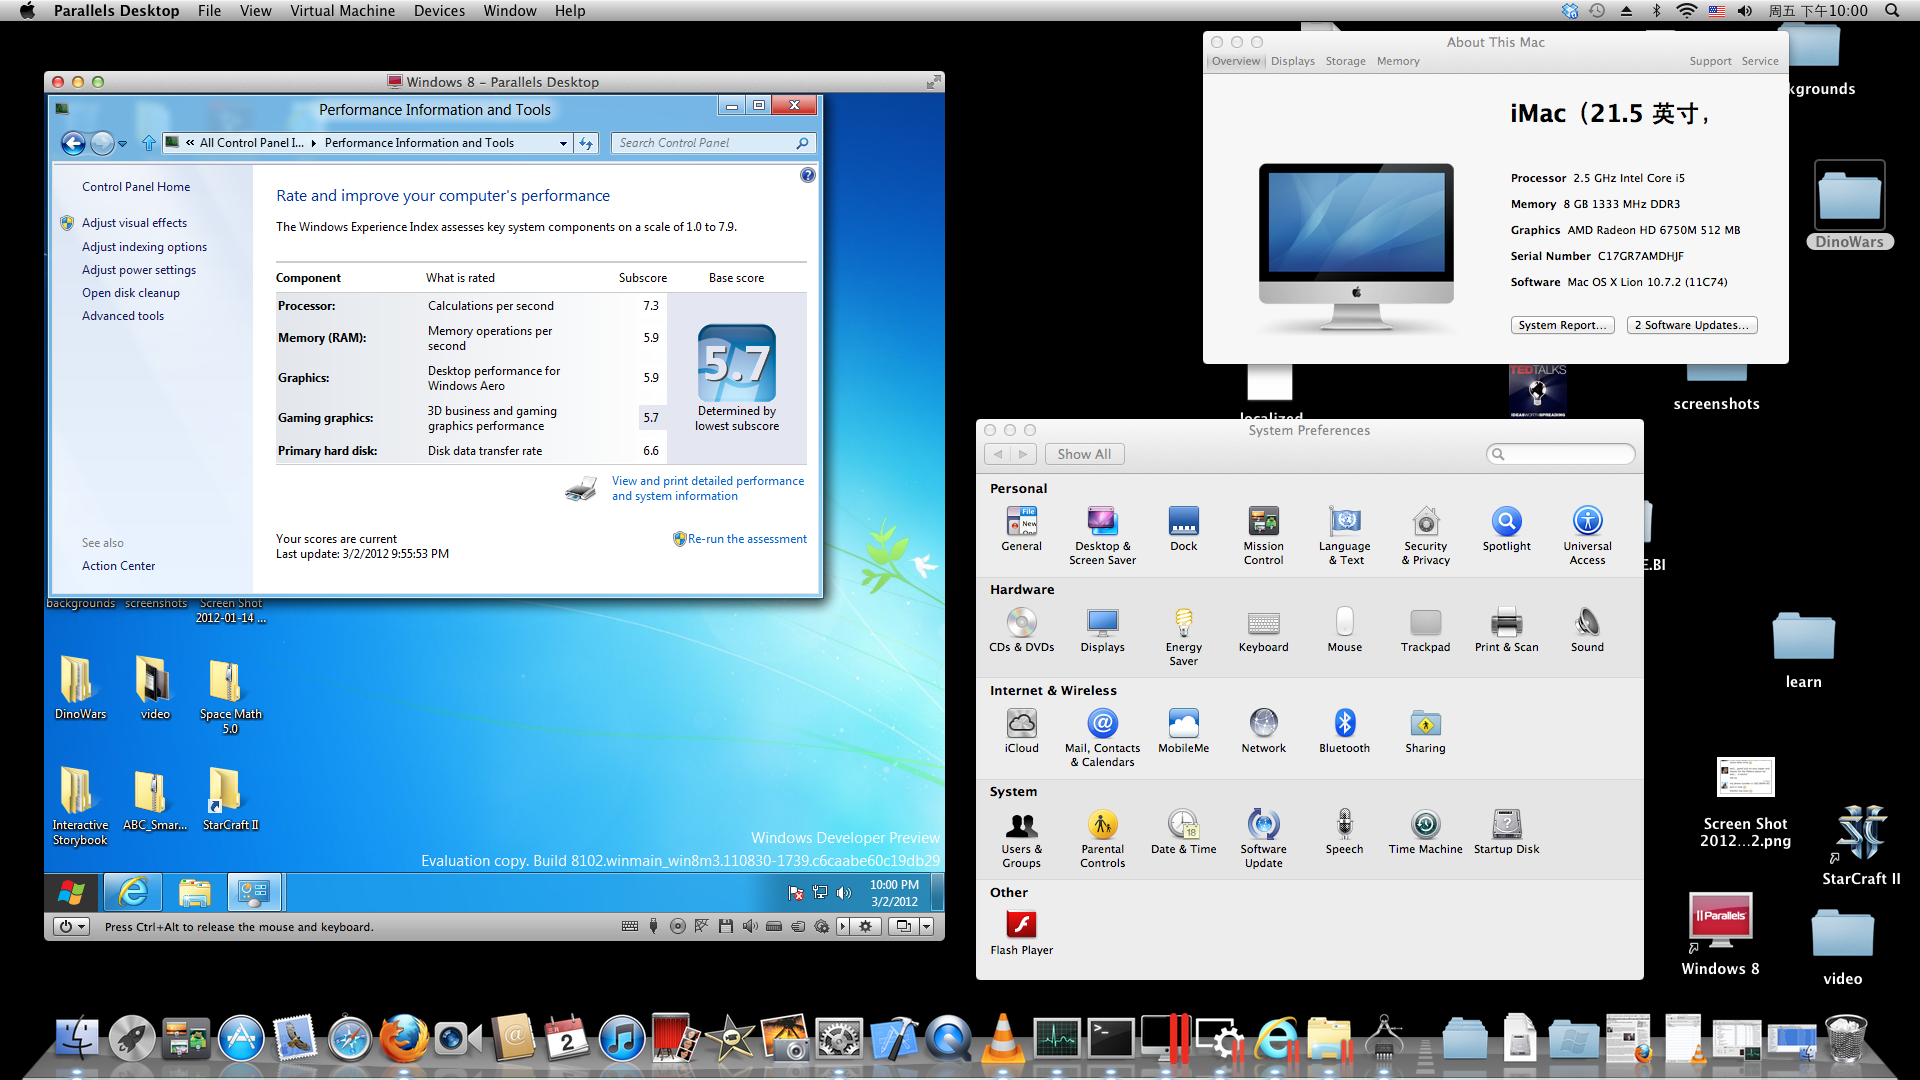 Windows 8 running on Lion with Parallels